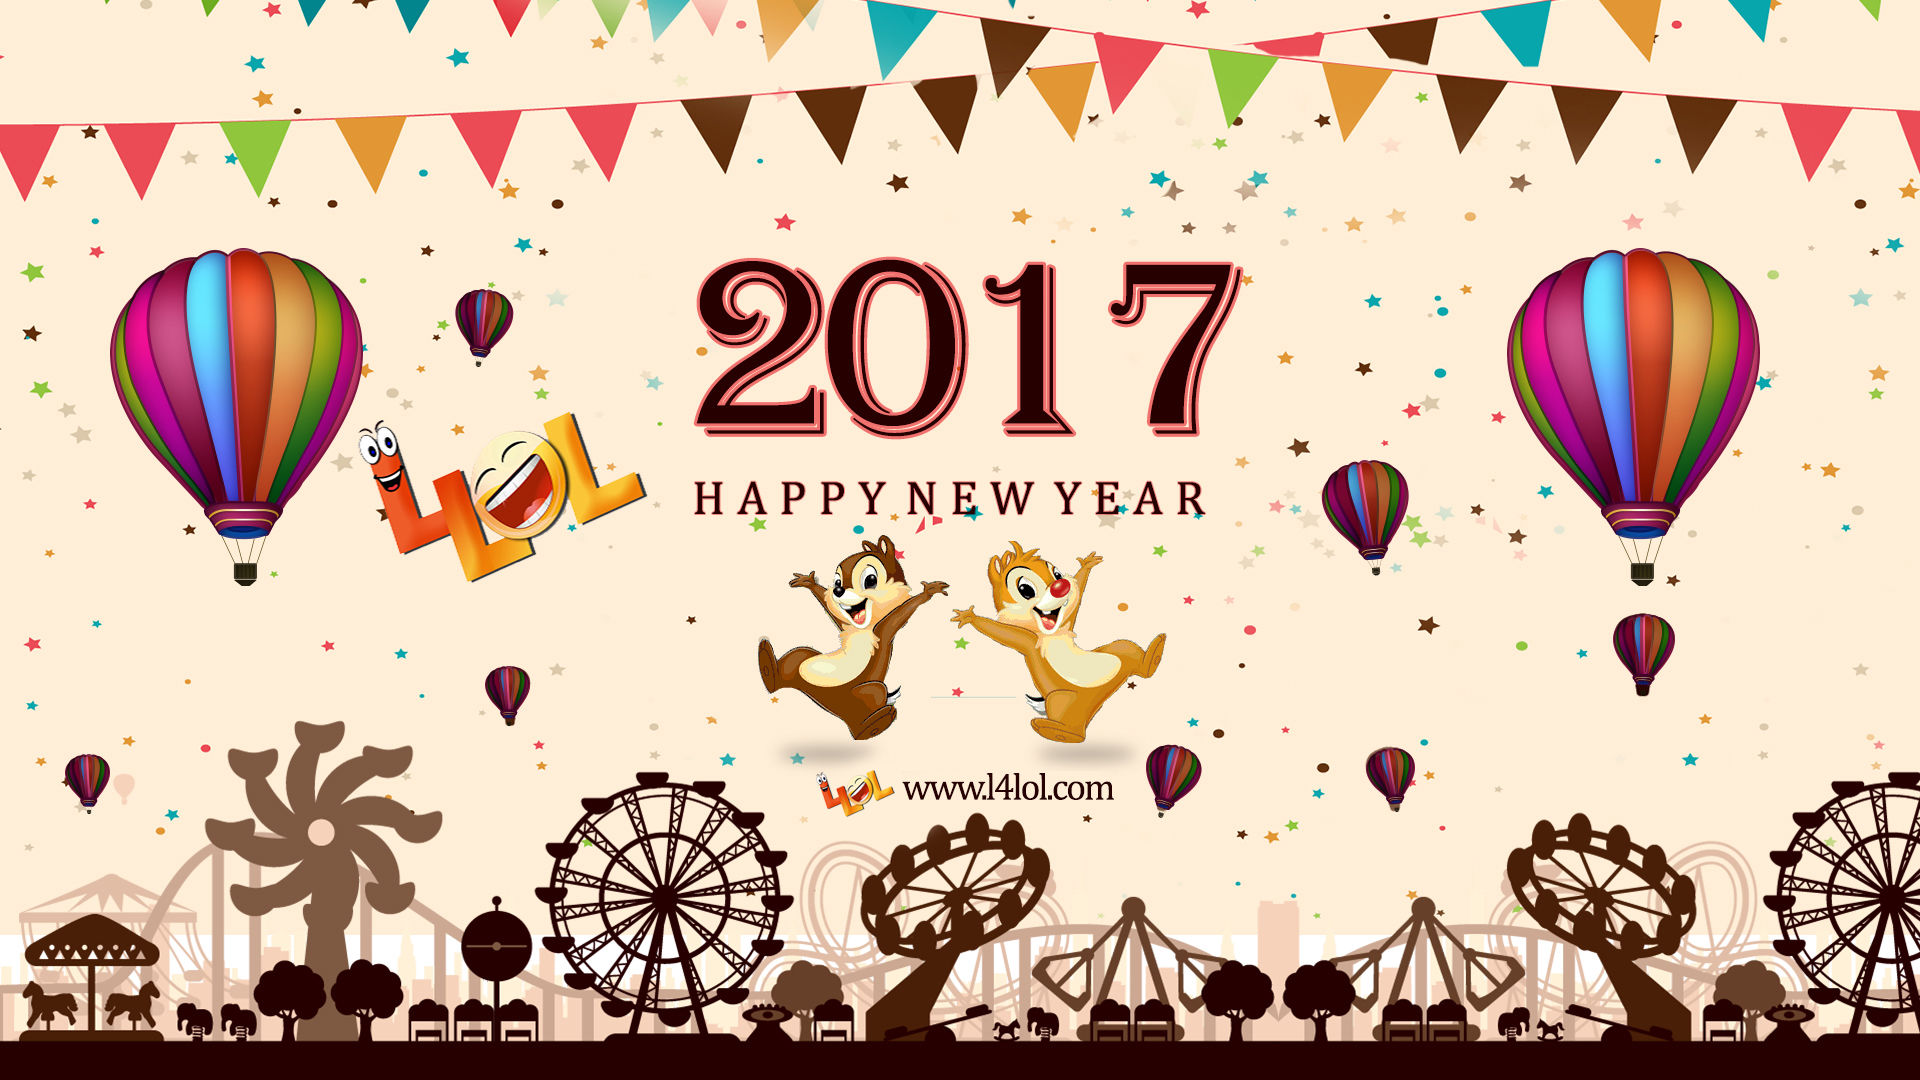 Happy New Year 2017 Wishes, Messages, Wallpaper, Images ...